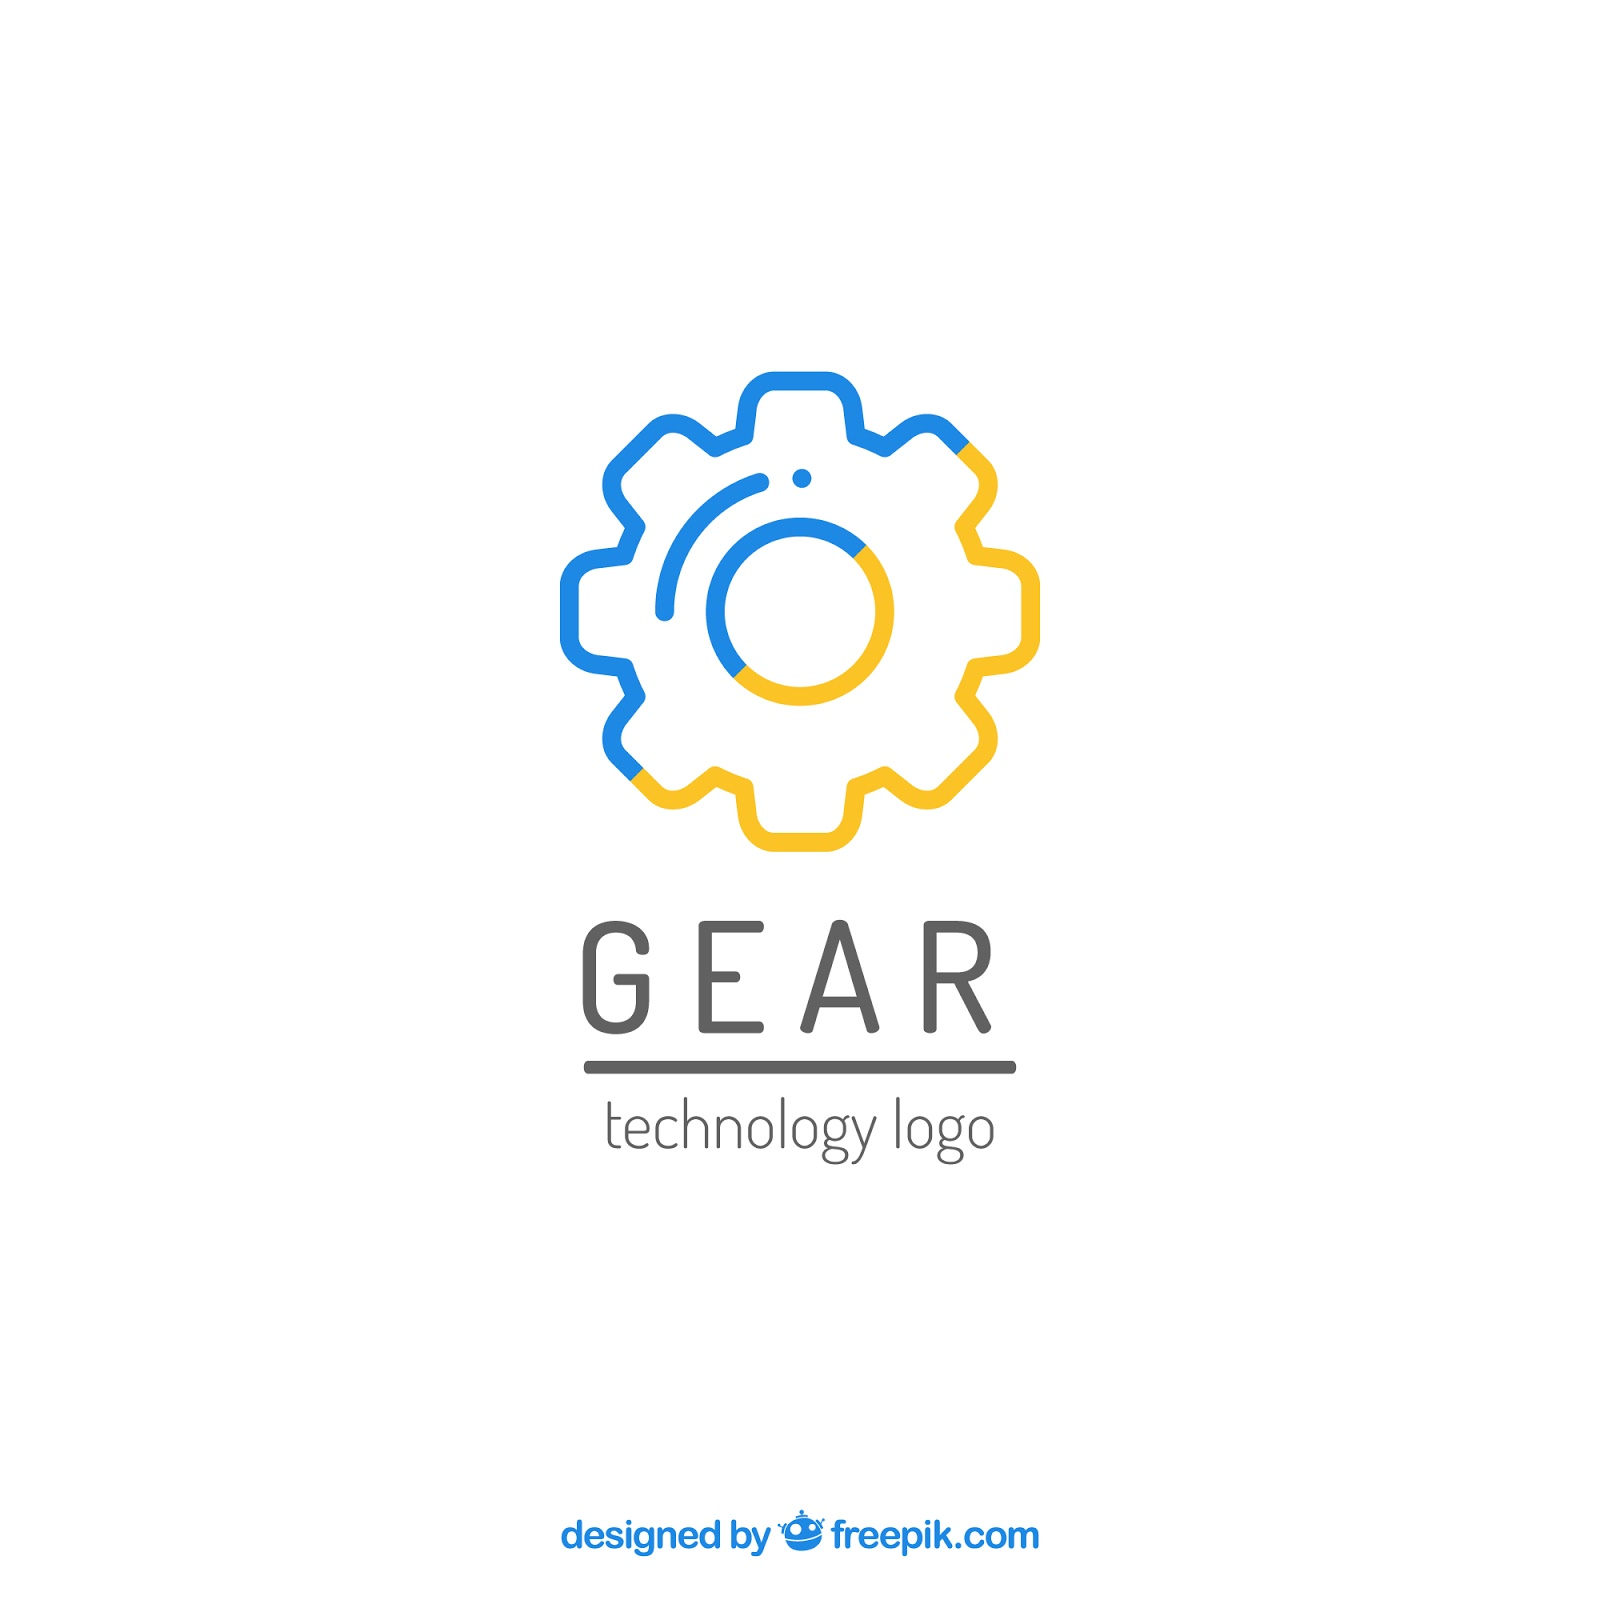 Graphics Gear Logo Vector	 Free Download Vector CDR, AI, EPS and PNG Formats